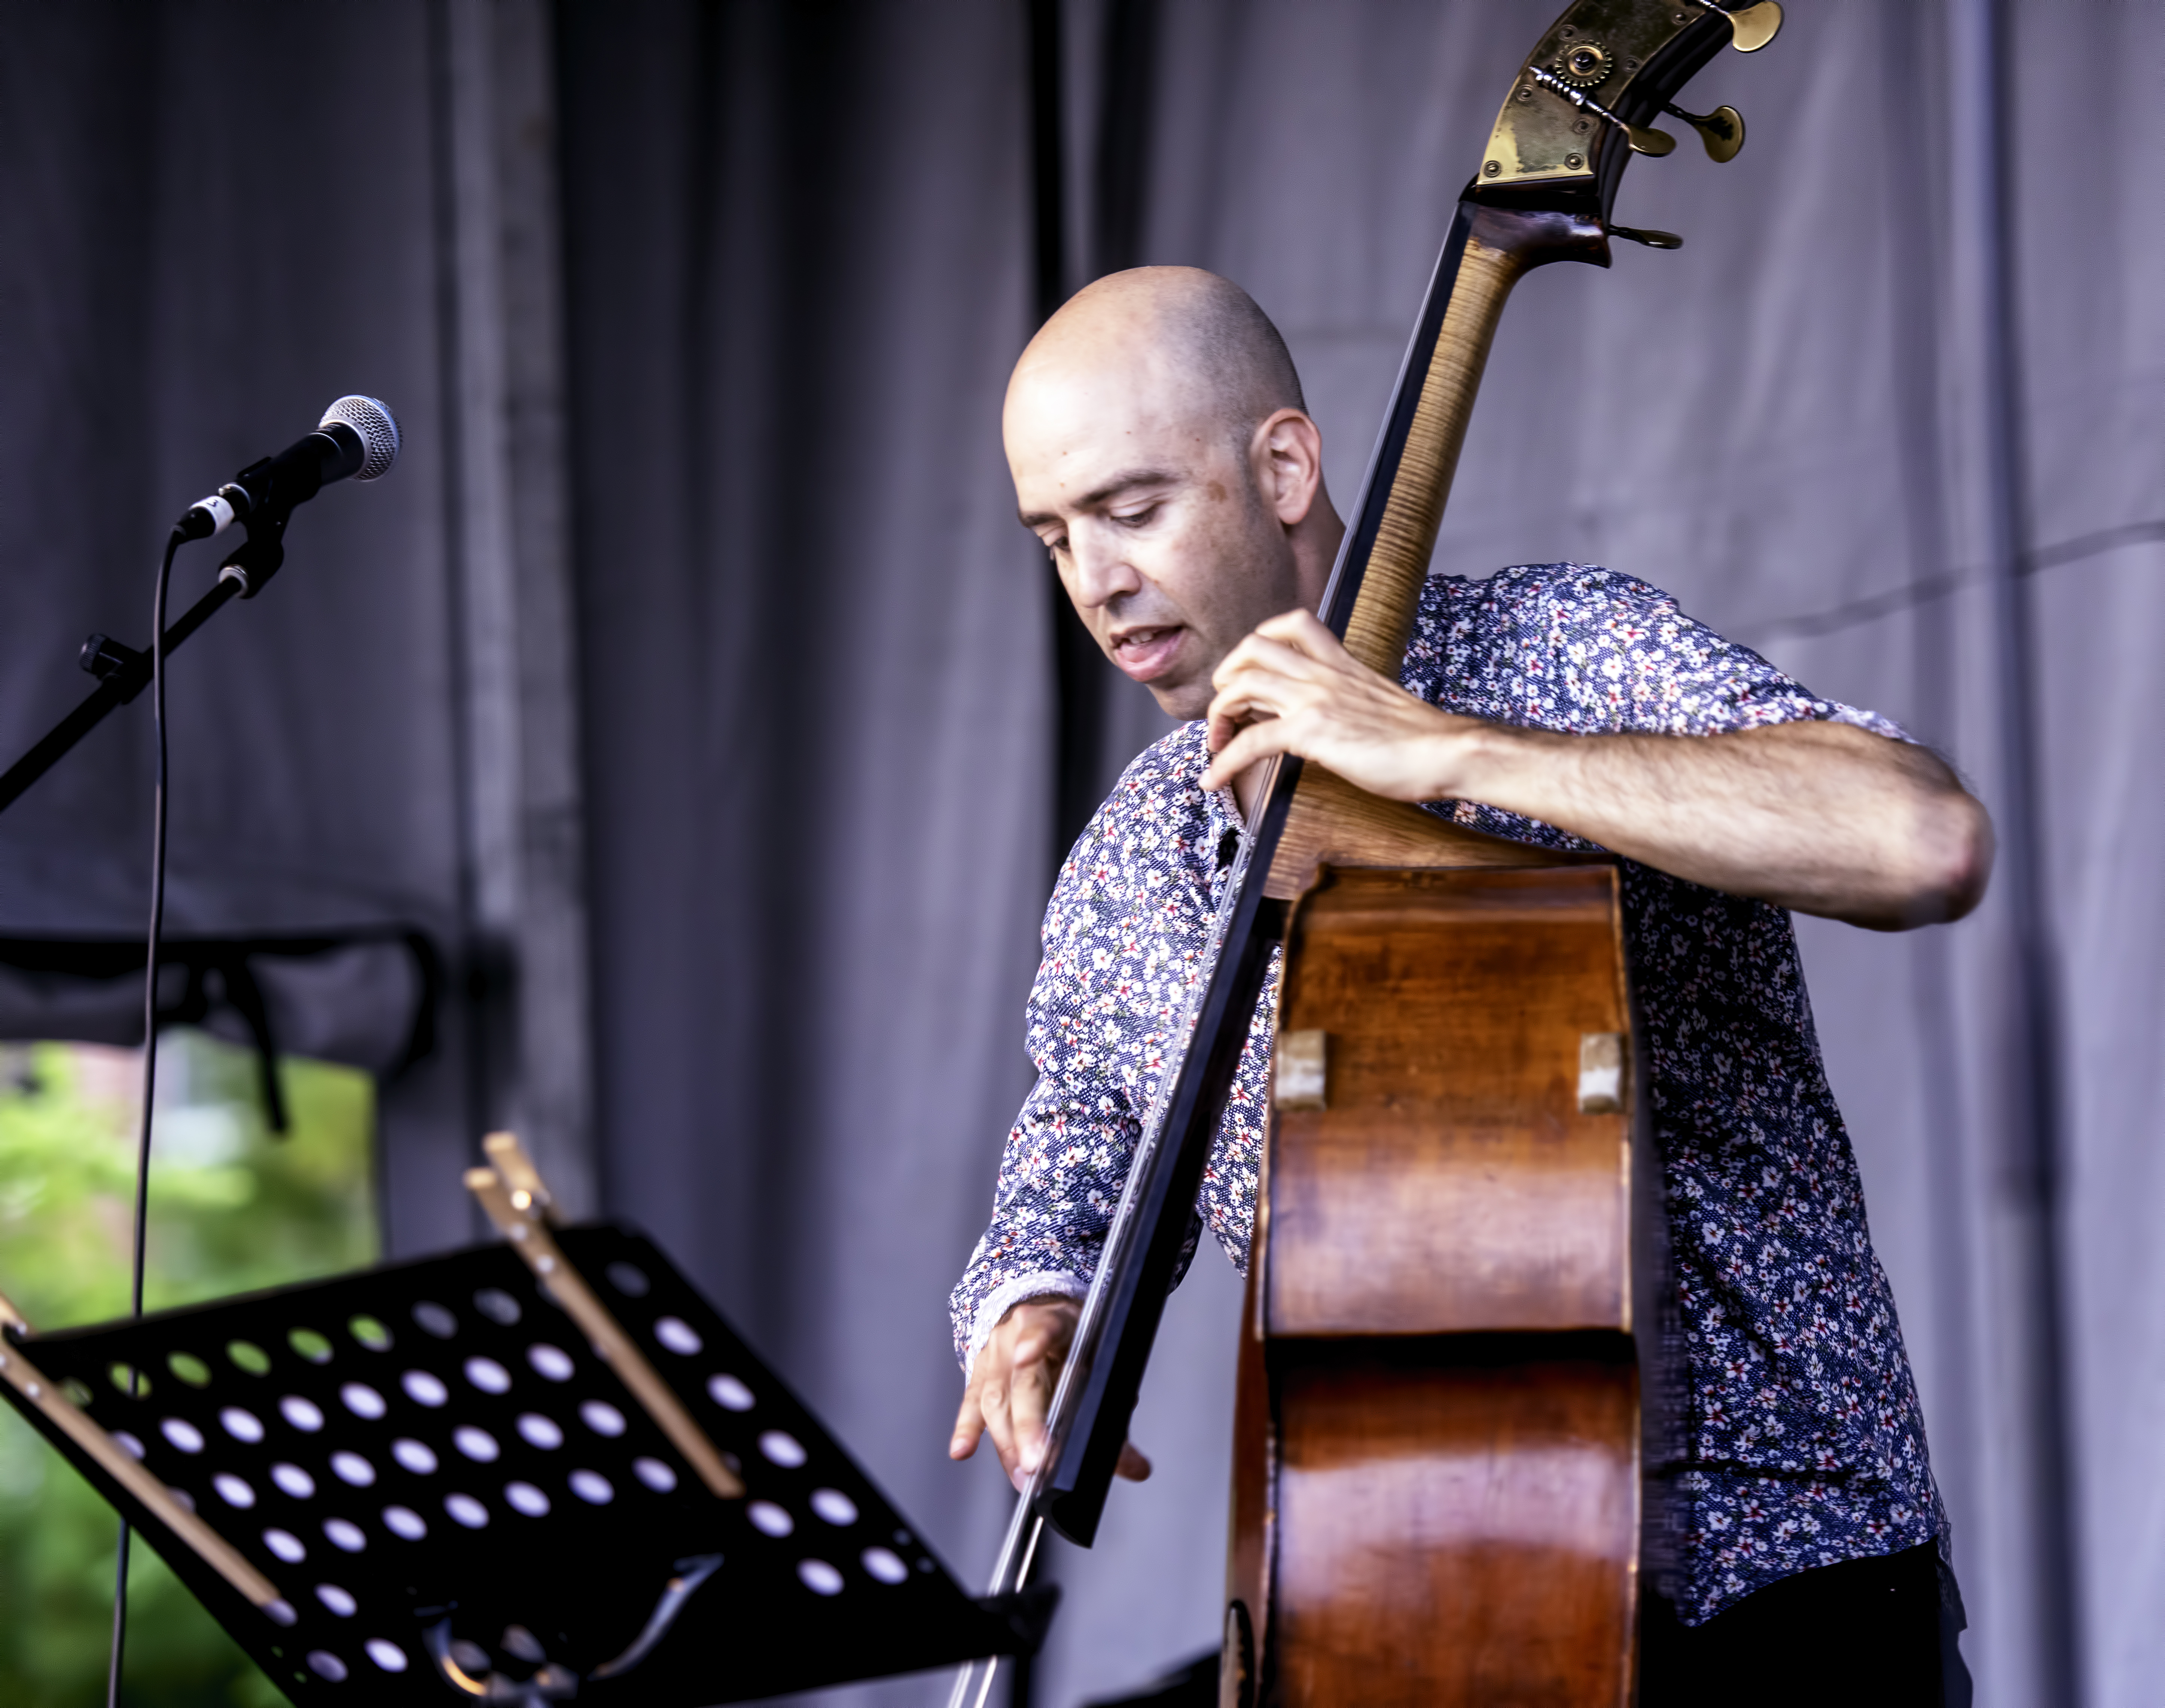 Michael Herring With Way North At The Guelph Jazz Festival 2019